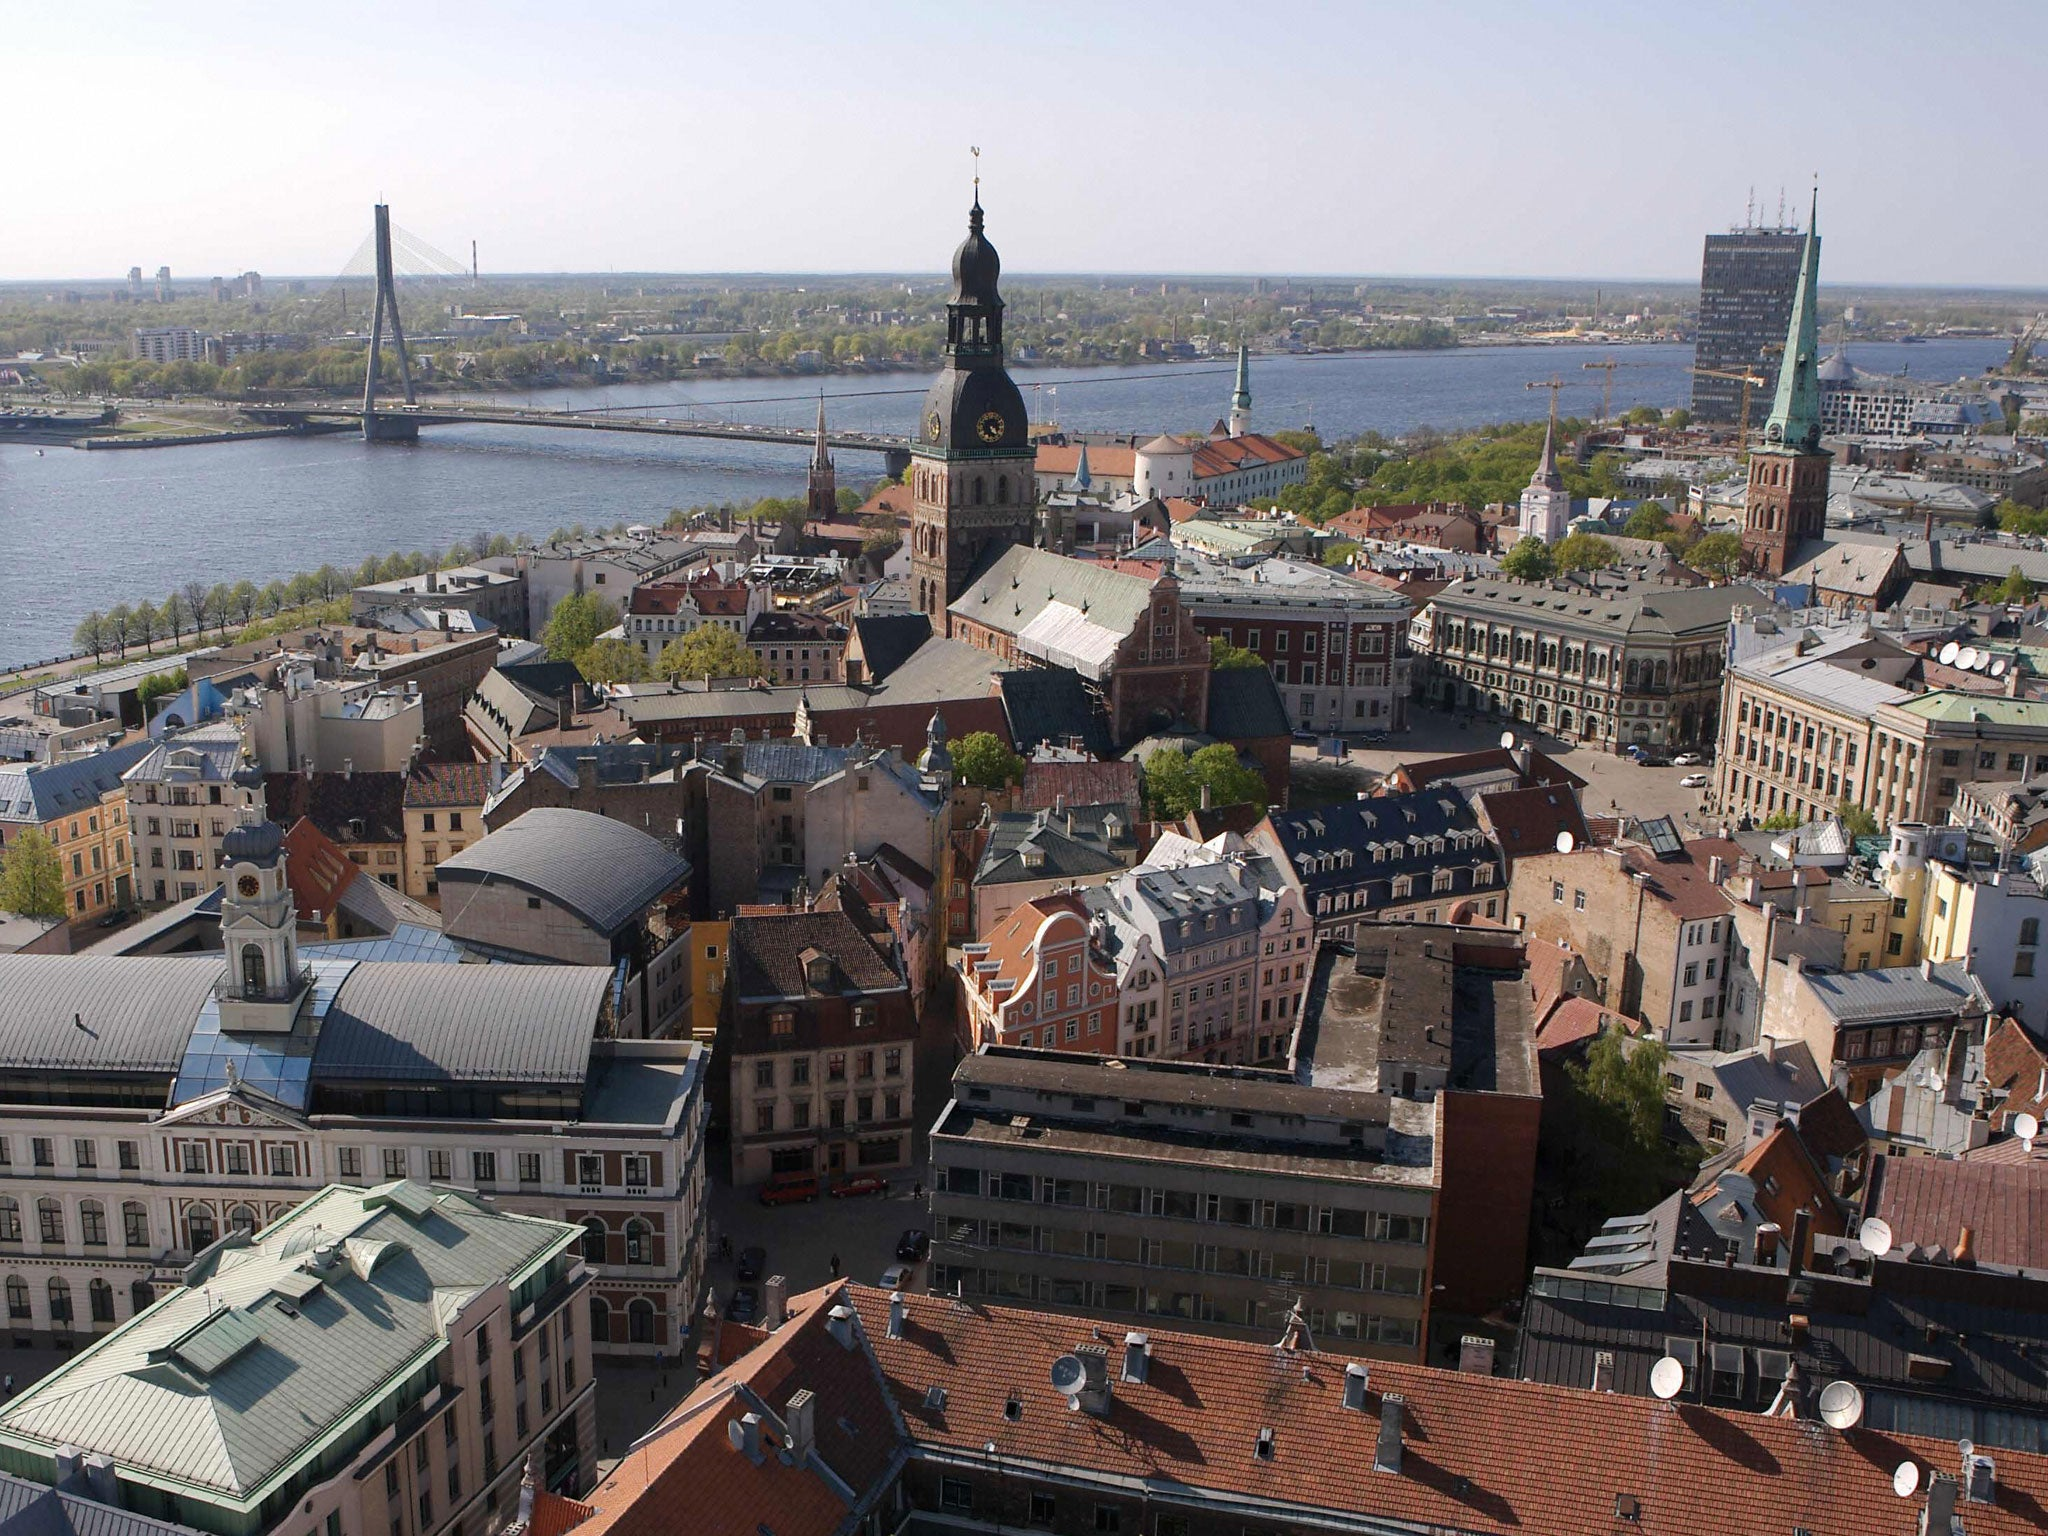 The 17 most unsafe cities in Europe | The Independent